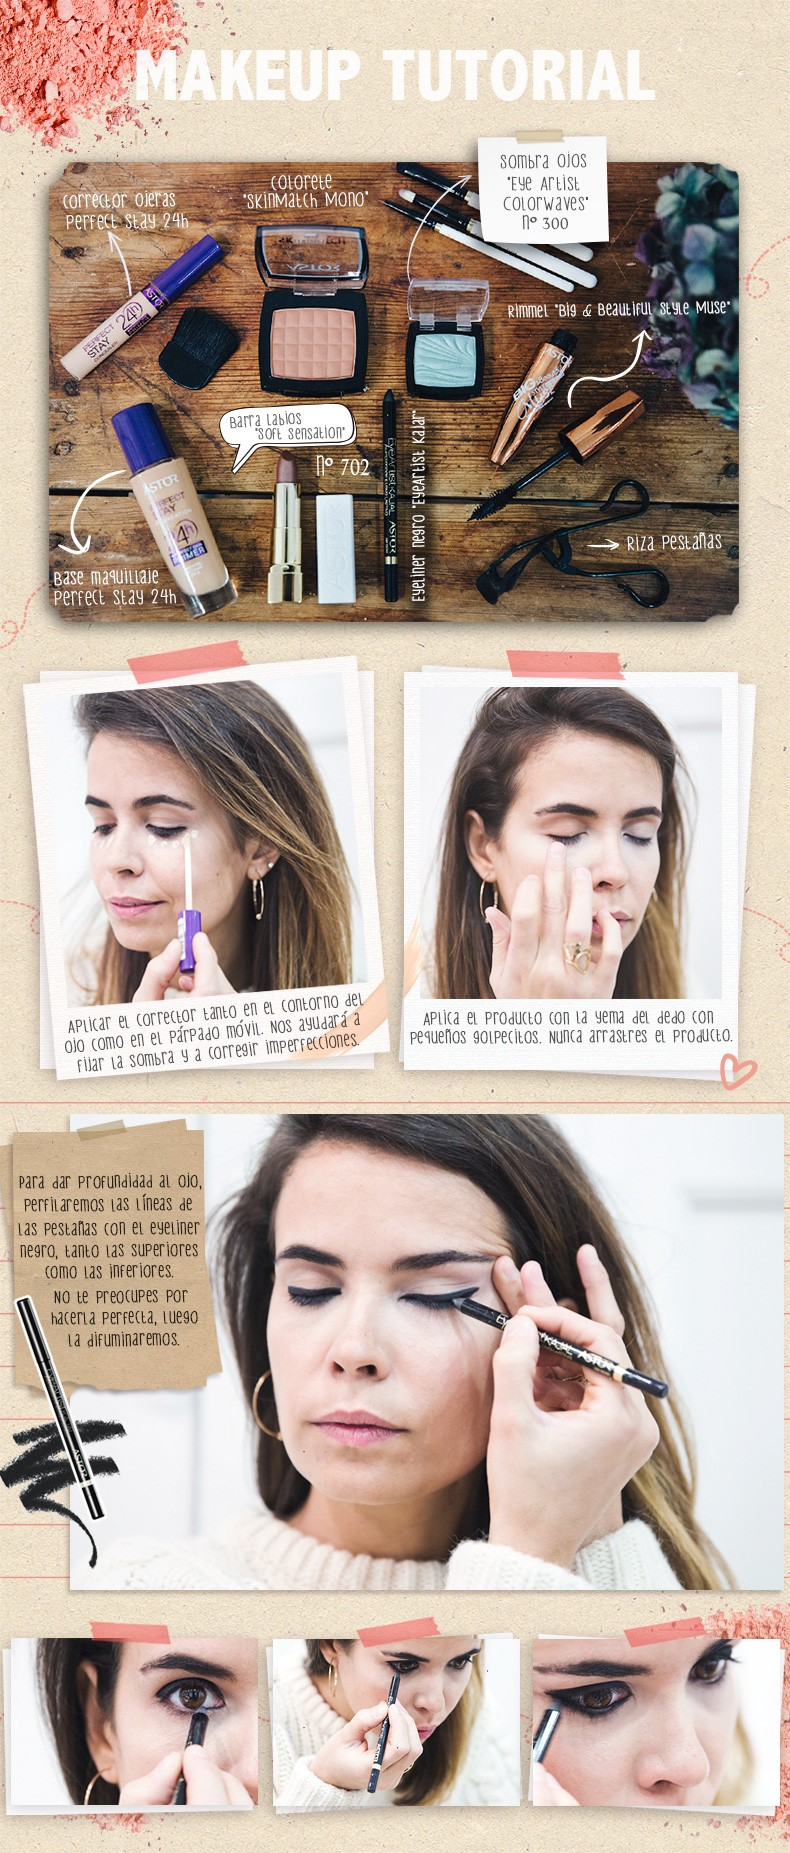 Astor-Make_Up_Tutorial-Smokey_Eyes-Ojos_Ahumados-Collage_Vintage-101